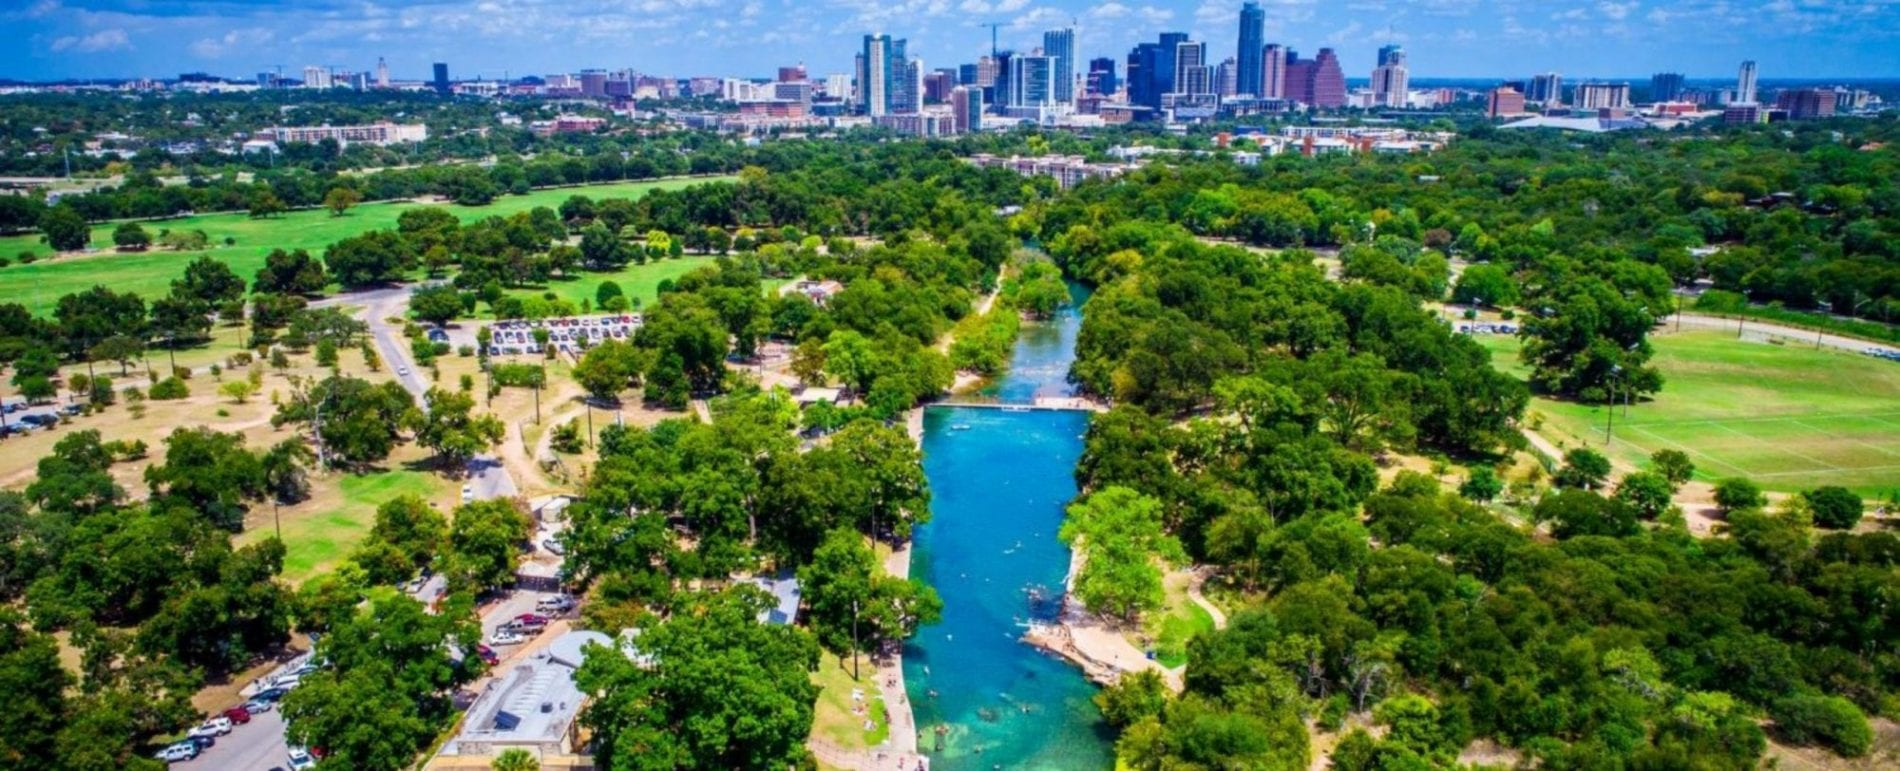 Unique Places To Visit In Texas 1500x609@2x Scaled